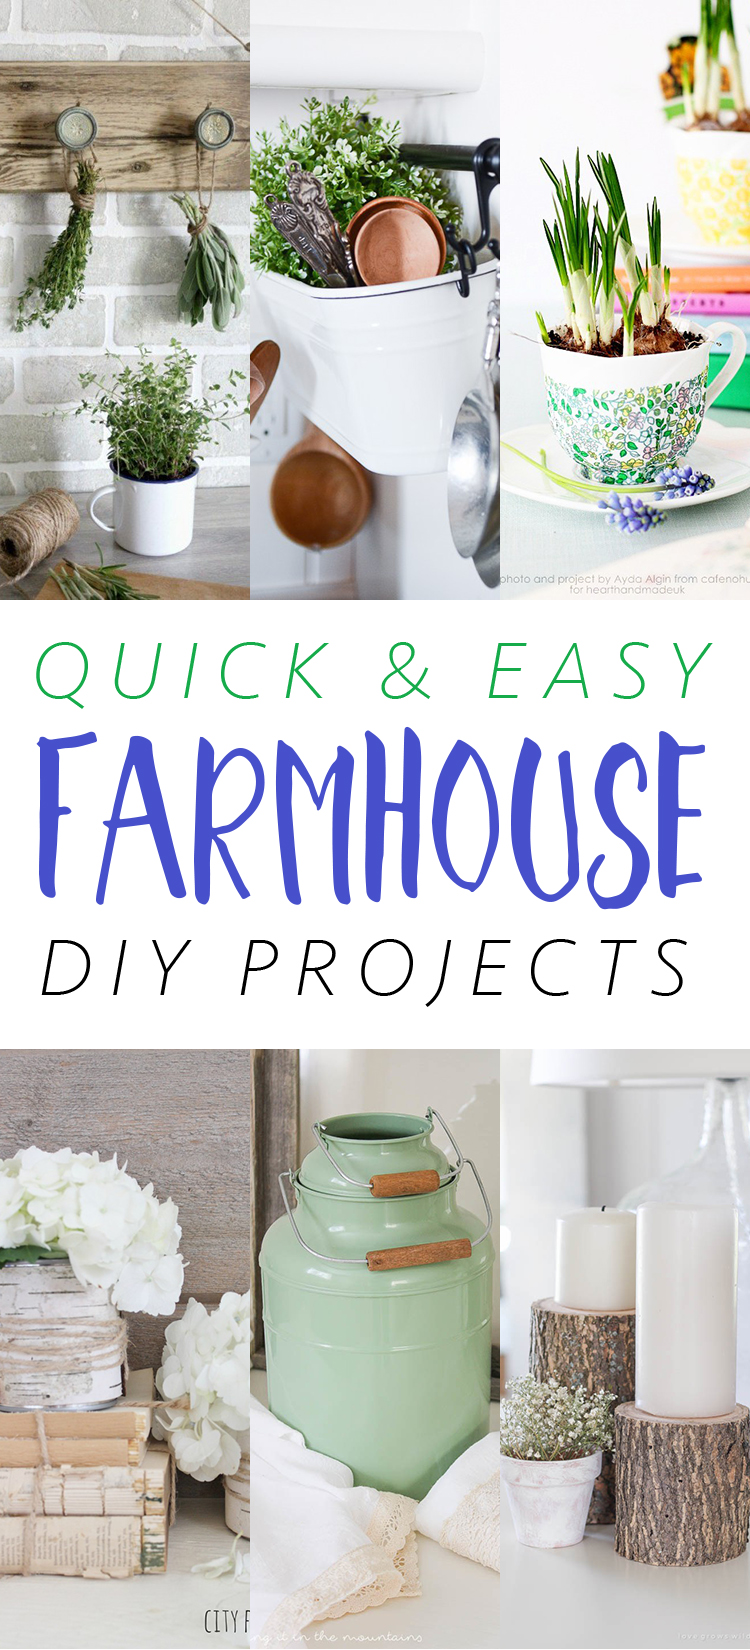 QuickandEasyFarmhouseDIY-TOWER-001